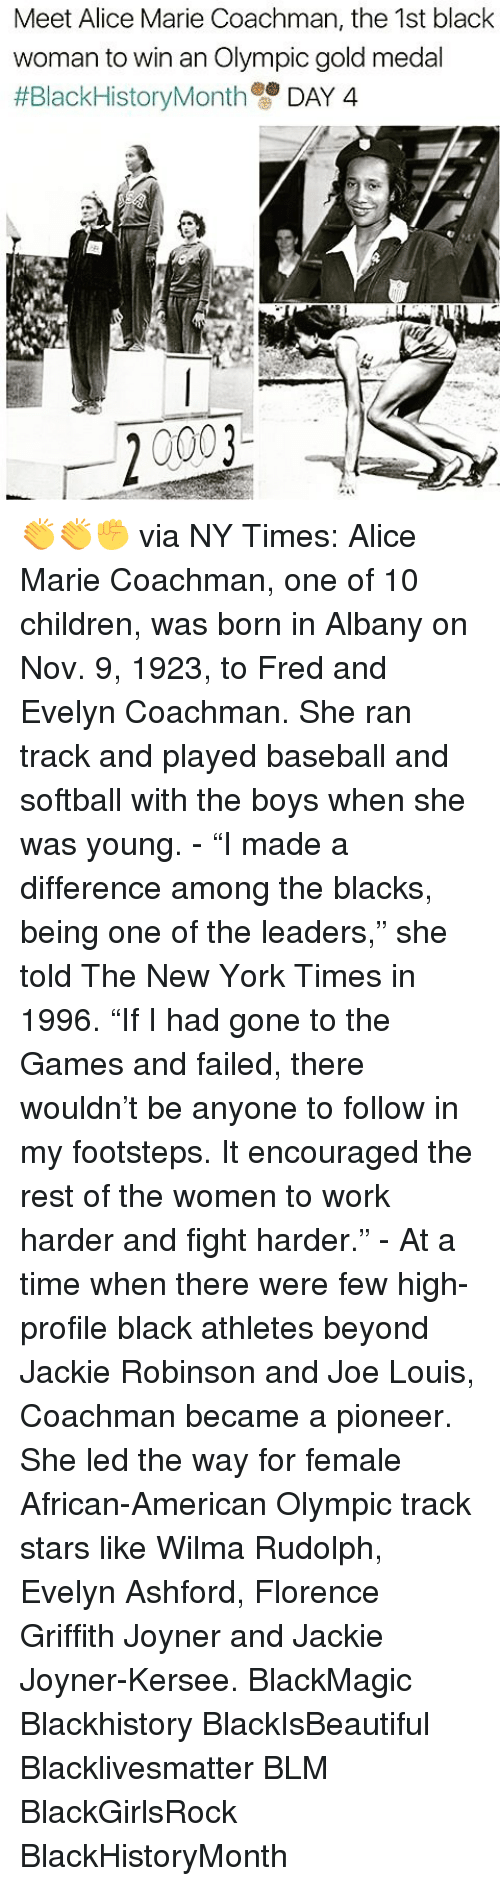 "Baseballisms: Meet Alice Marie Coachman, the 1st black  woman to win an Olympic gold medal  #Black HistoryMonth  DAY 4  20003 👏👏✊ via NY Times: Alice Marie Coachman, one of 10 children, was born in Albany on Nov. 9, 1923, to Fred and Evelyn Coachman. She ran track and played baseball and softball with the boys when she was young. - ""I made a difference among the blacks, being one of the leaders,"" she told The New York Times in 1996. ""If I had gone to the Games and failed, there wouldn't be anyone to follow in my footsteps. It encouraged the rest of the women to work harder and fight harder."" - At a time when there were few high-profile black athletes beyond Jackie Robinson and Joe Louis, Coachman became a pioneer. She led the way for female African-American Olympic track stars like Wilma Rudolph, Evelyn Ashford, Florence Griffith Joyner and Jackie Joyner-Kersee. BlackMagic Blackhistory BlackIsBeautiful Blacklivesmatter BLM BlackGirlsRock BlackHistoryMonth"